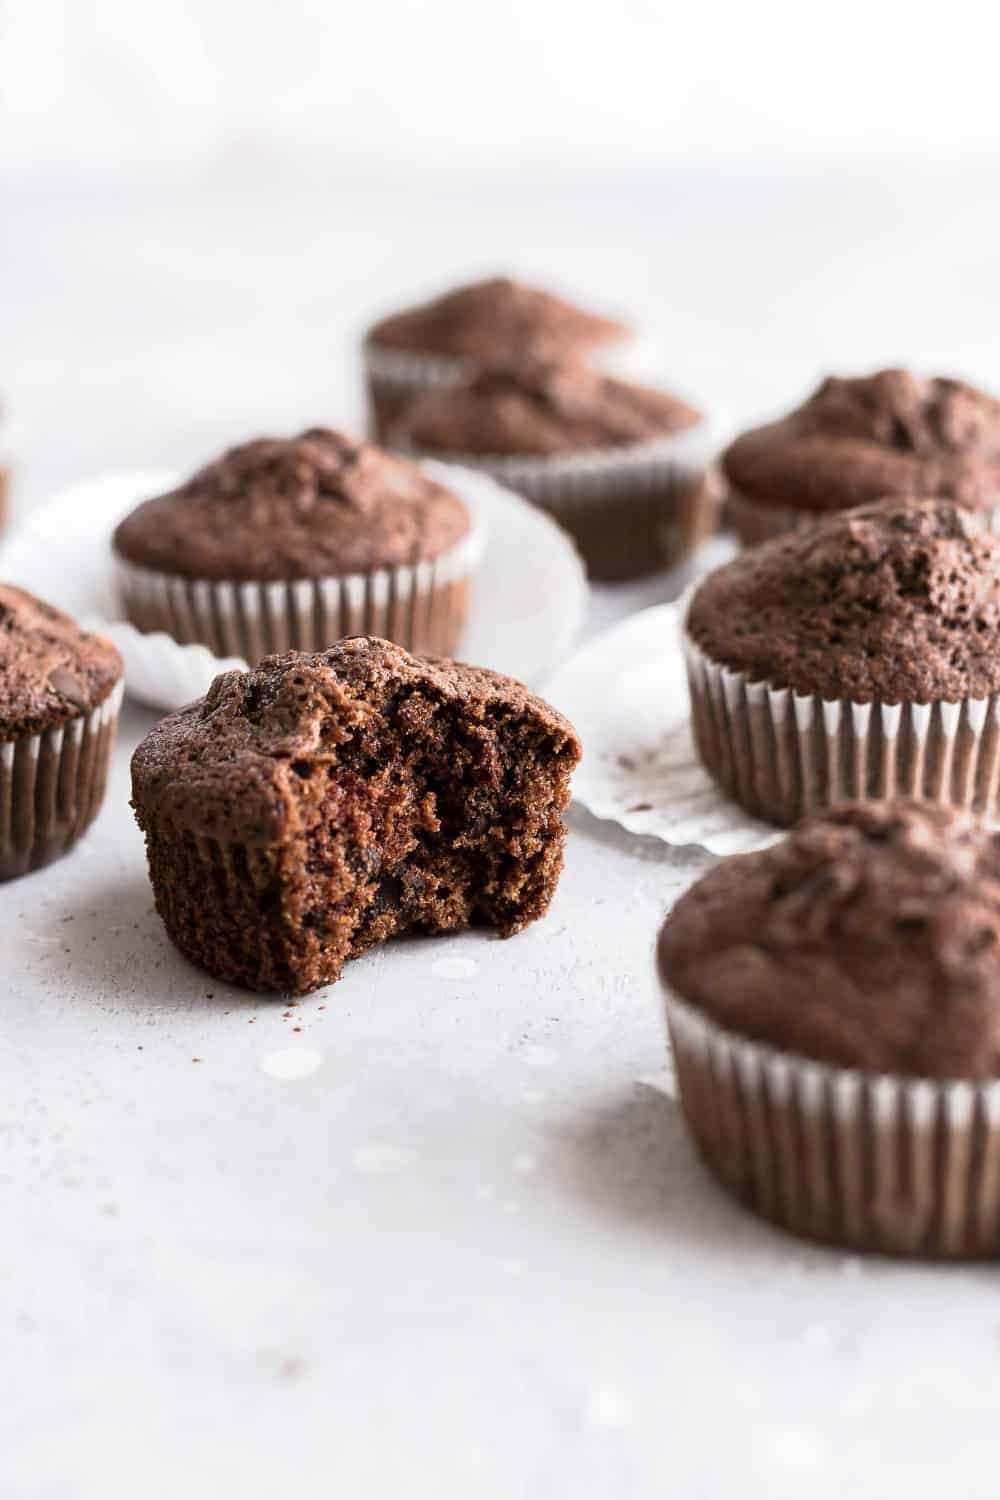 Side view of chocolate zucchini muffin with a bite taken out of it